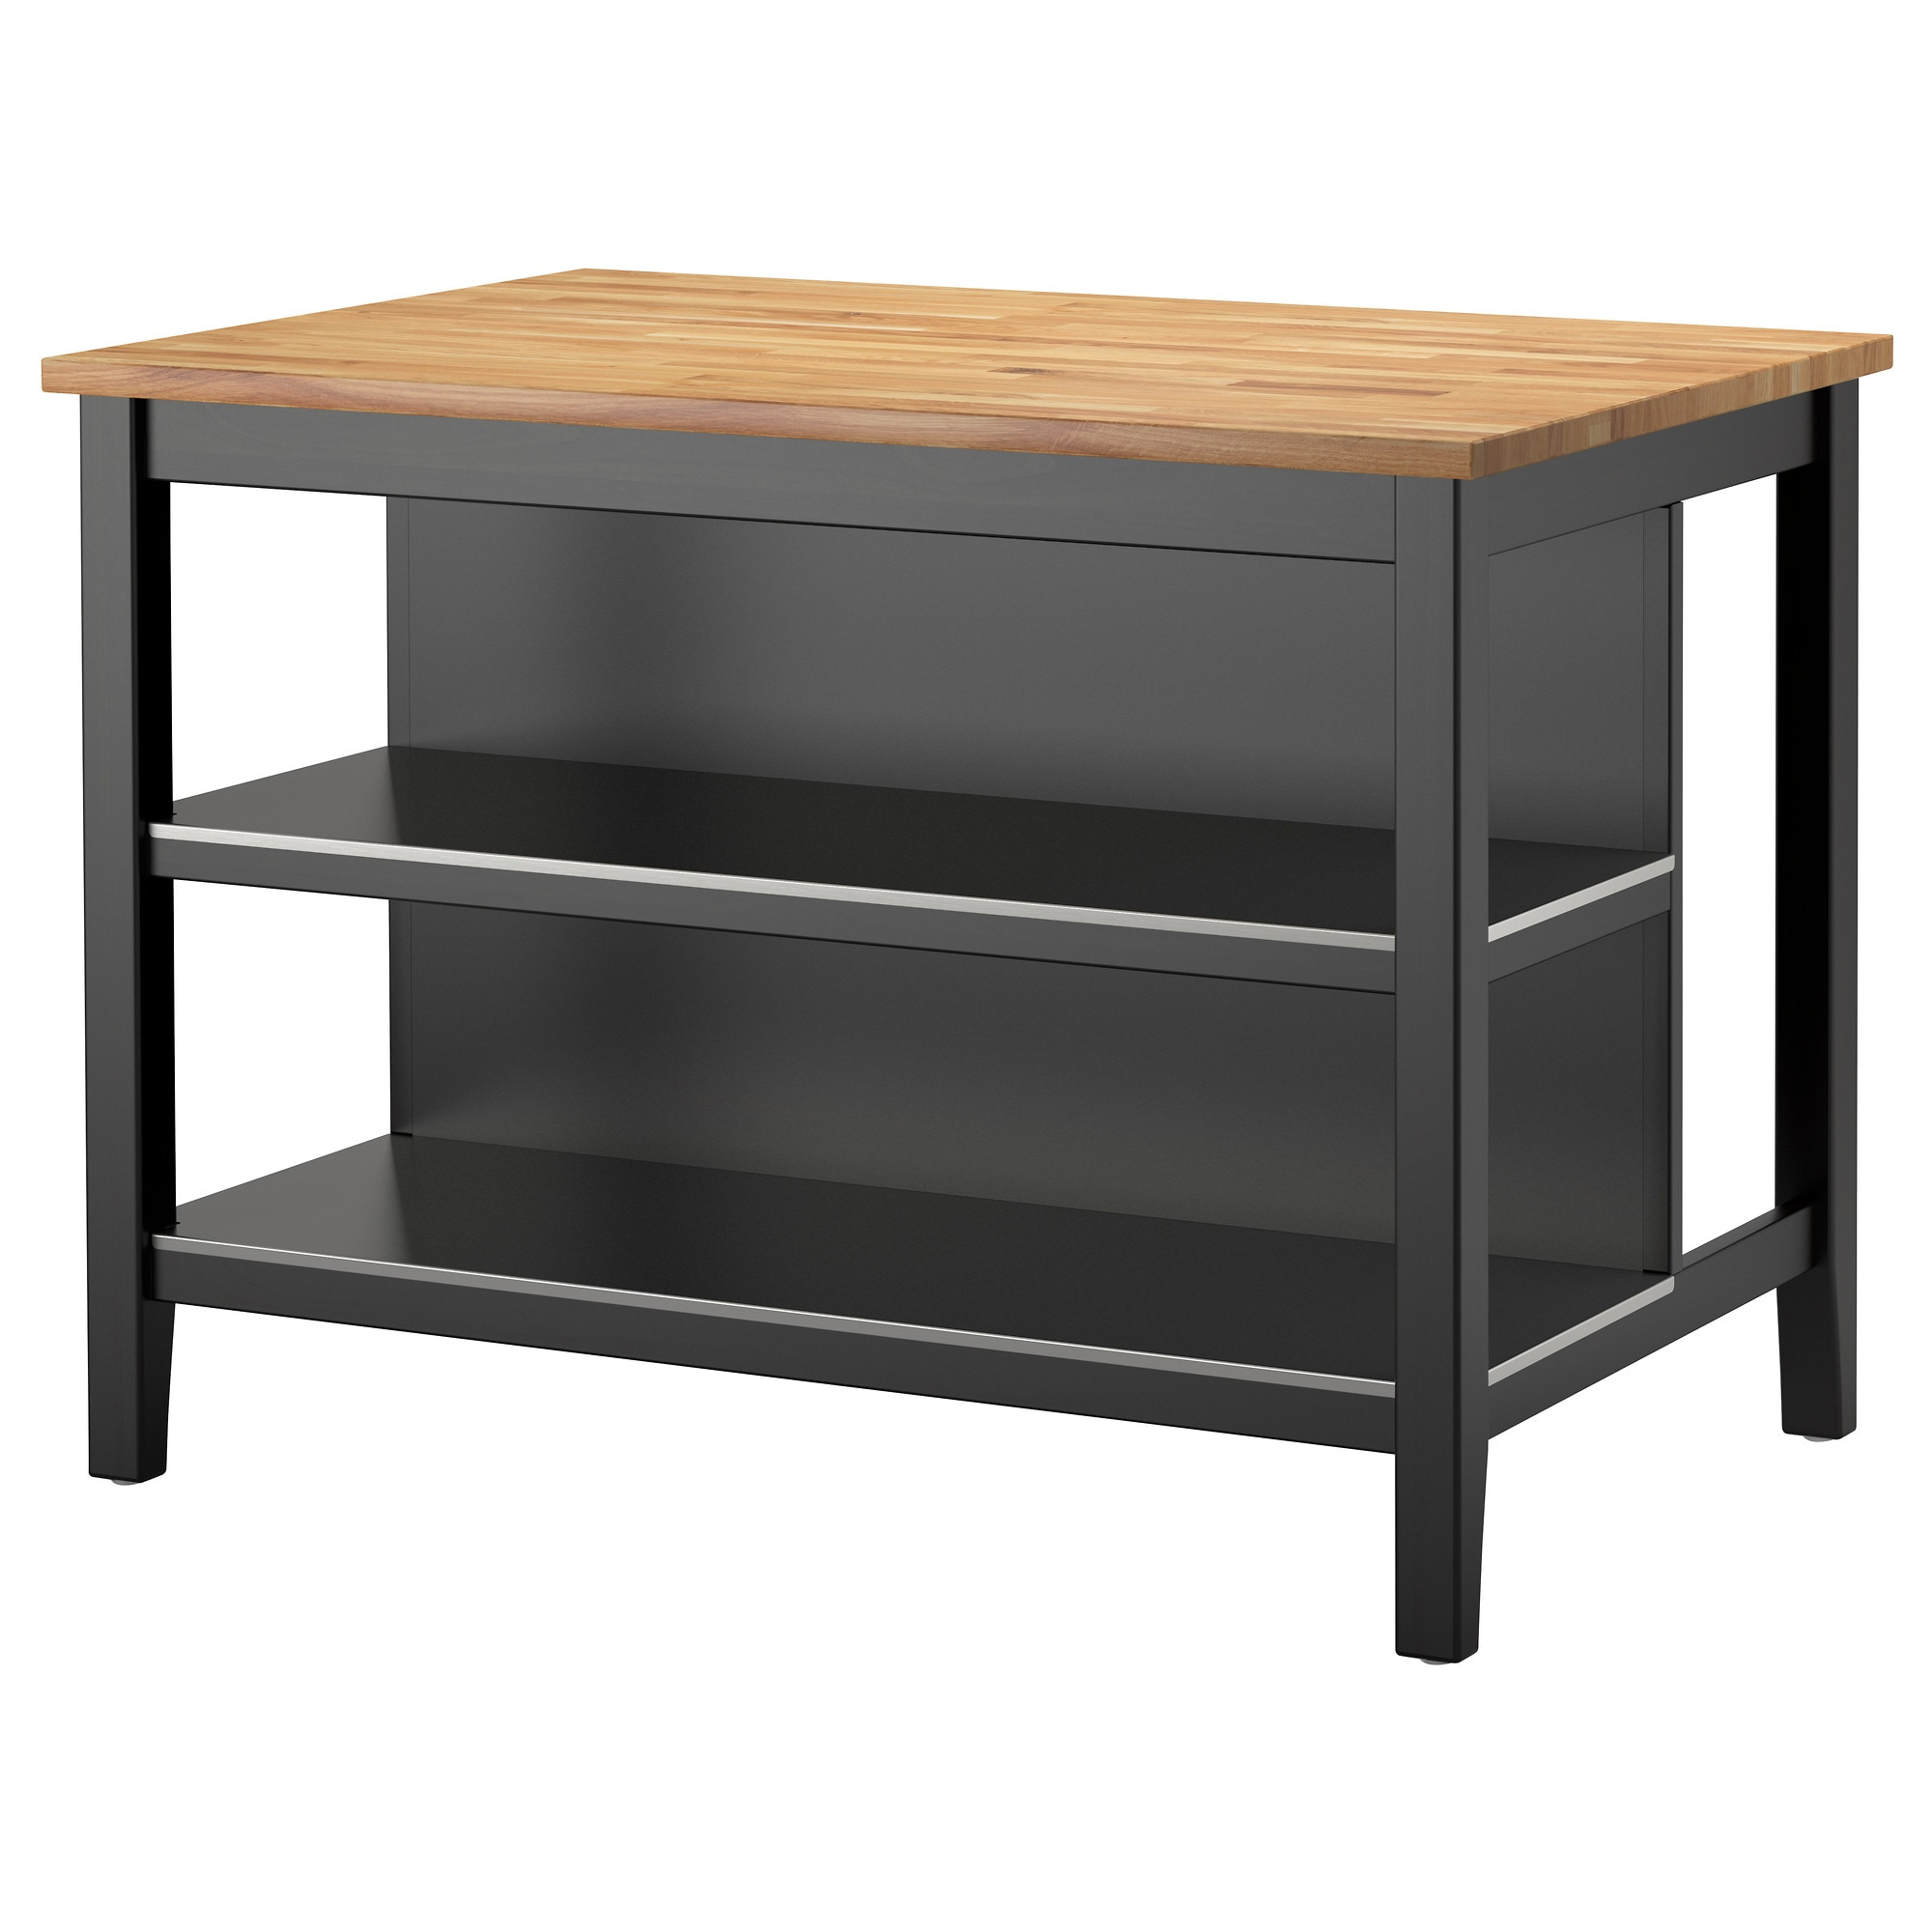 amazing Kitchen Island Perth #2: STENSTORP kitchen island, black-brown, oak Length: 126 cm Width: 79